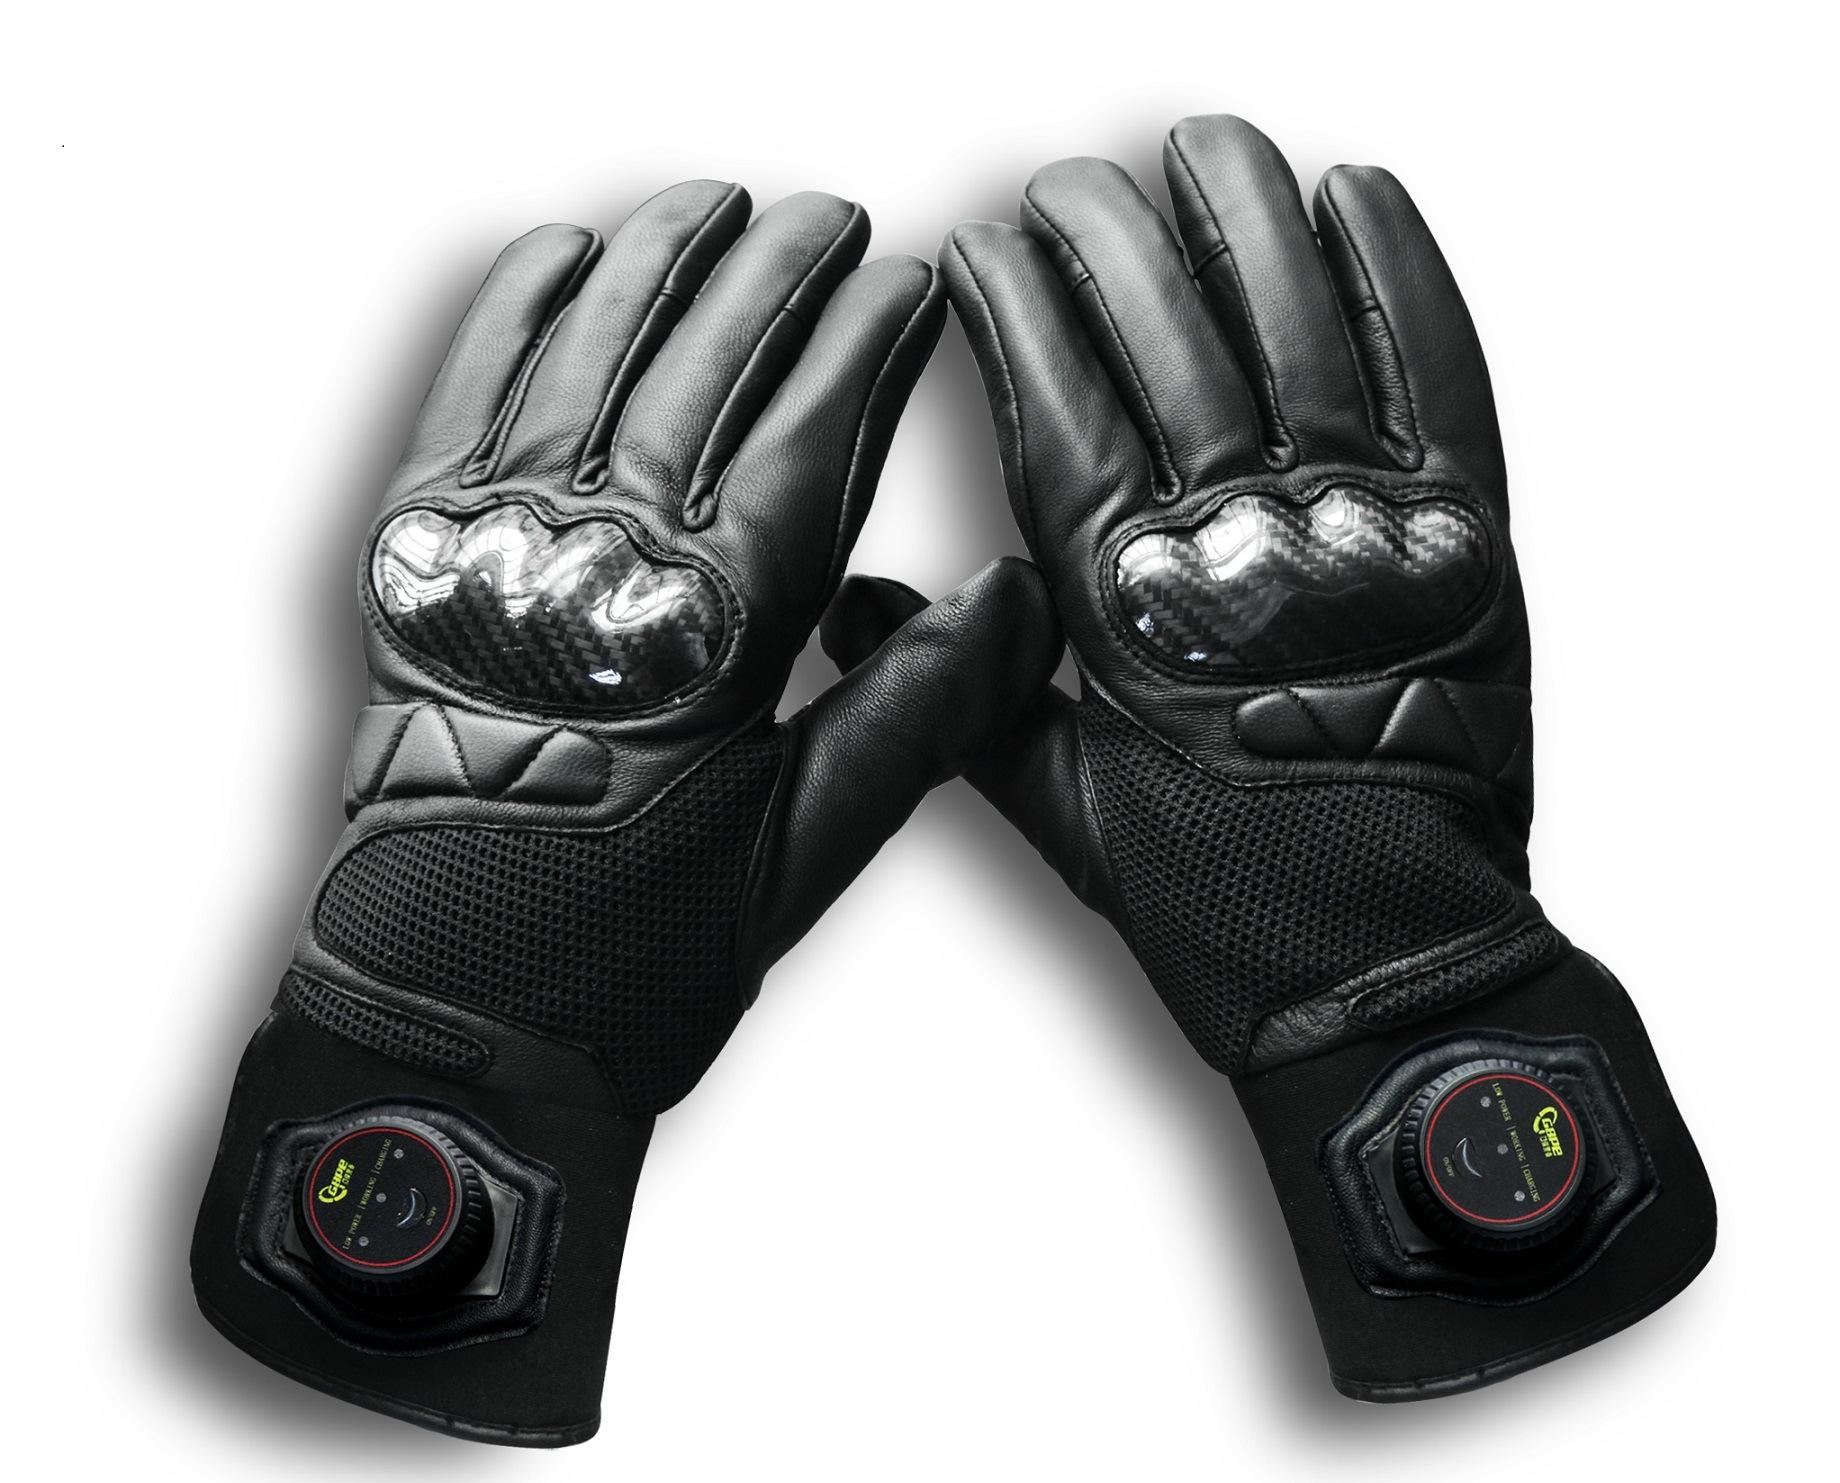 Fuyuda Low-Voltage Police Law Enforcement Anti-Riot Hunting Taser Gloves Military Tactical Anti-Cutting Gloves